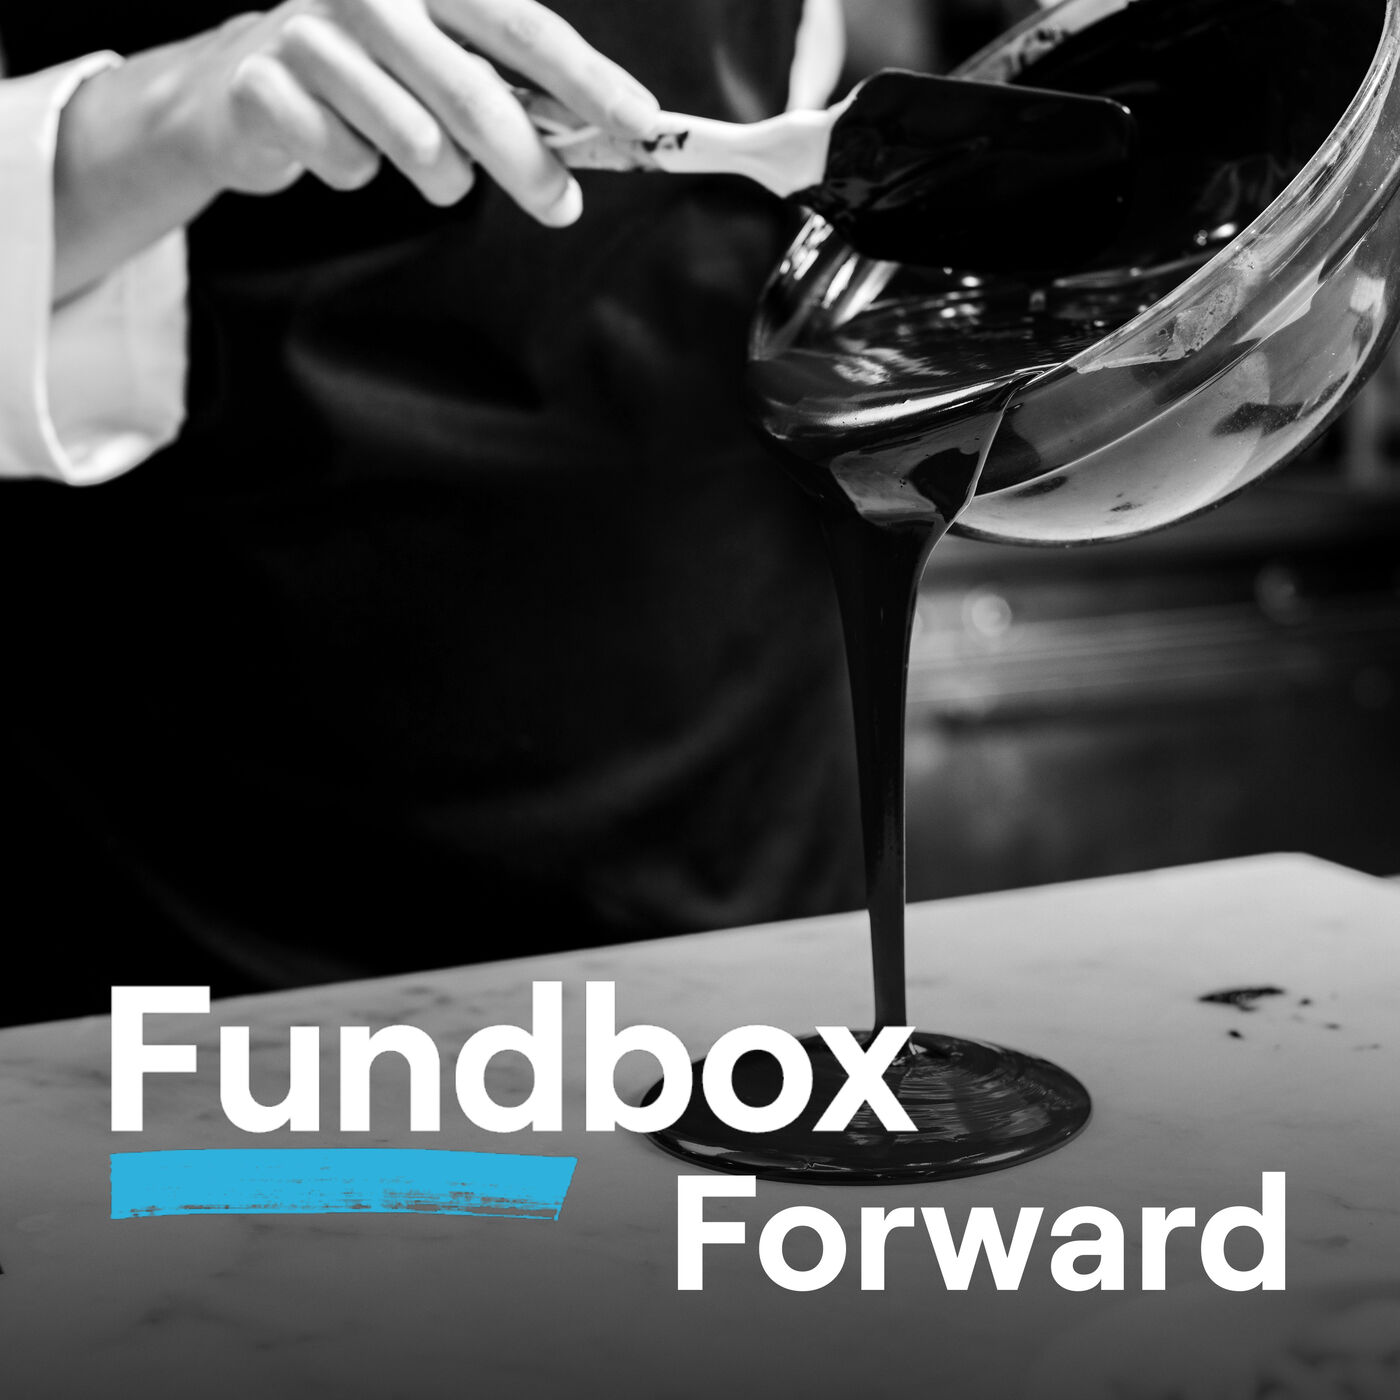 How a Premium Chocolatier Pivoted During COVID with Help of Credit from Fundbox